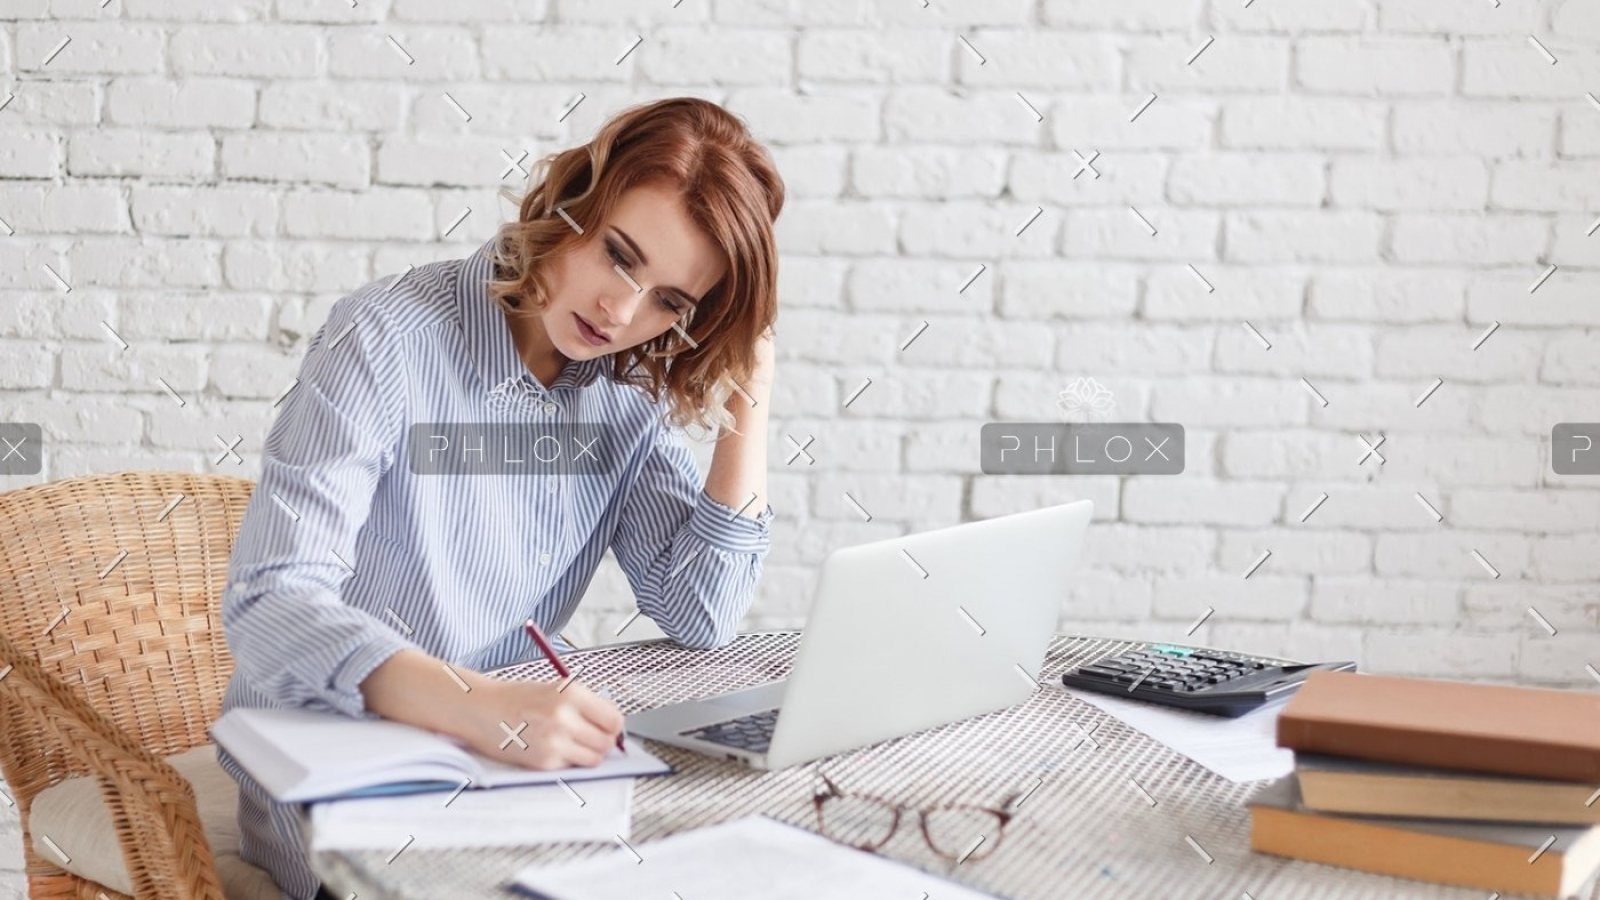 demo-attachment-159-woman-freelancer-female-hands-with-pen-writing-on-P369BAX1